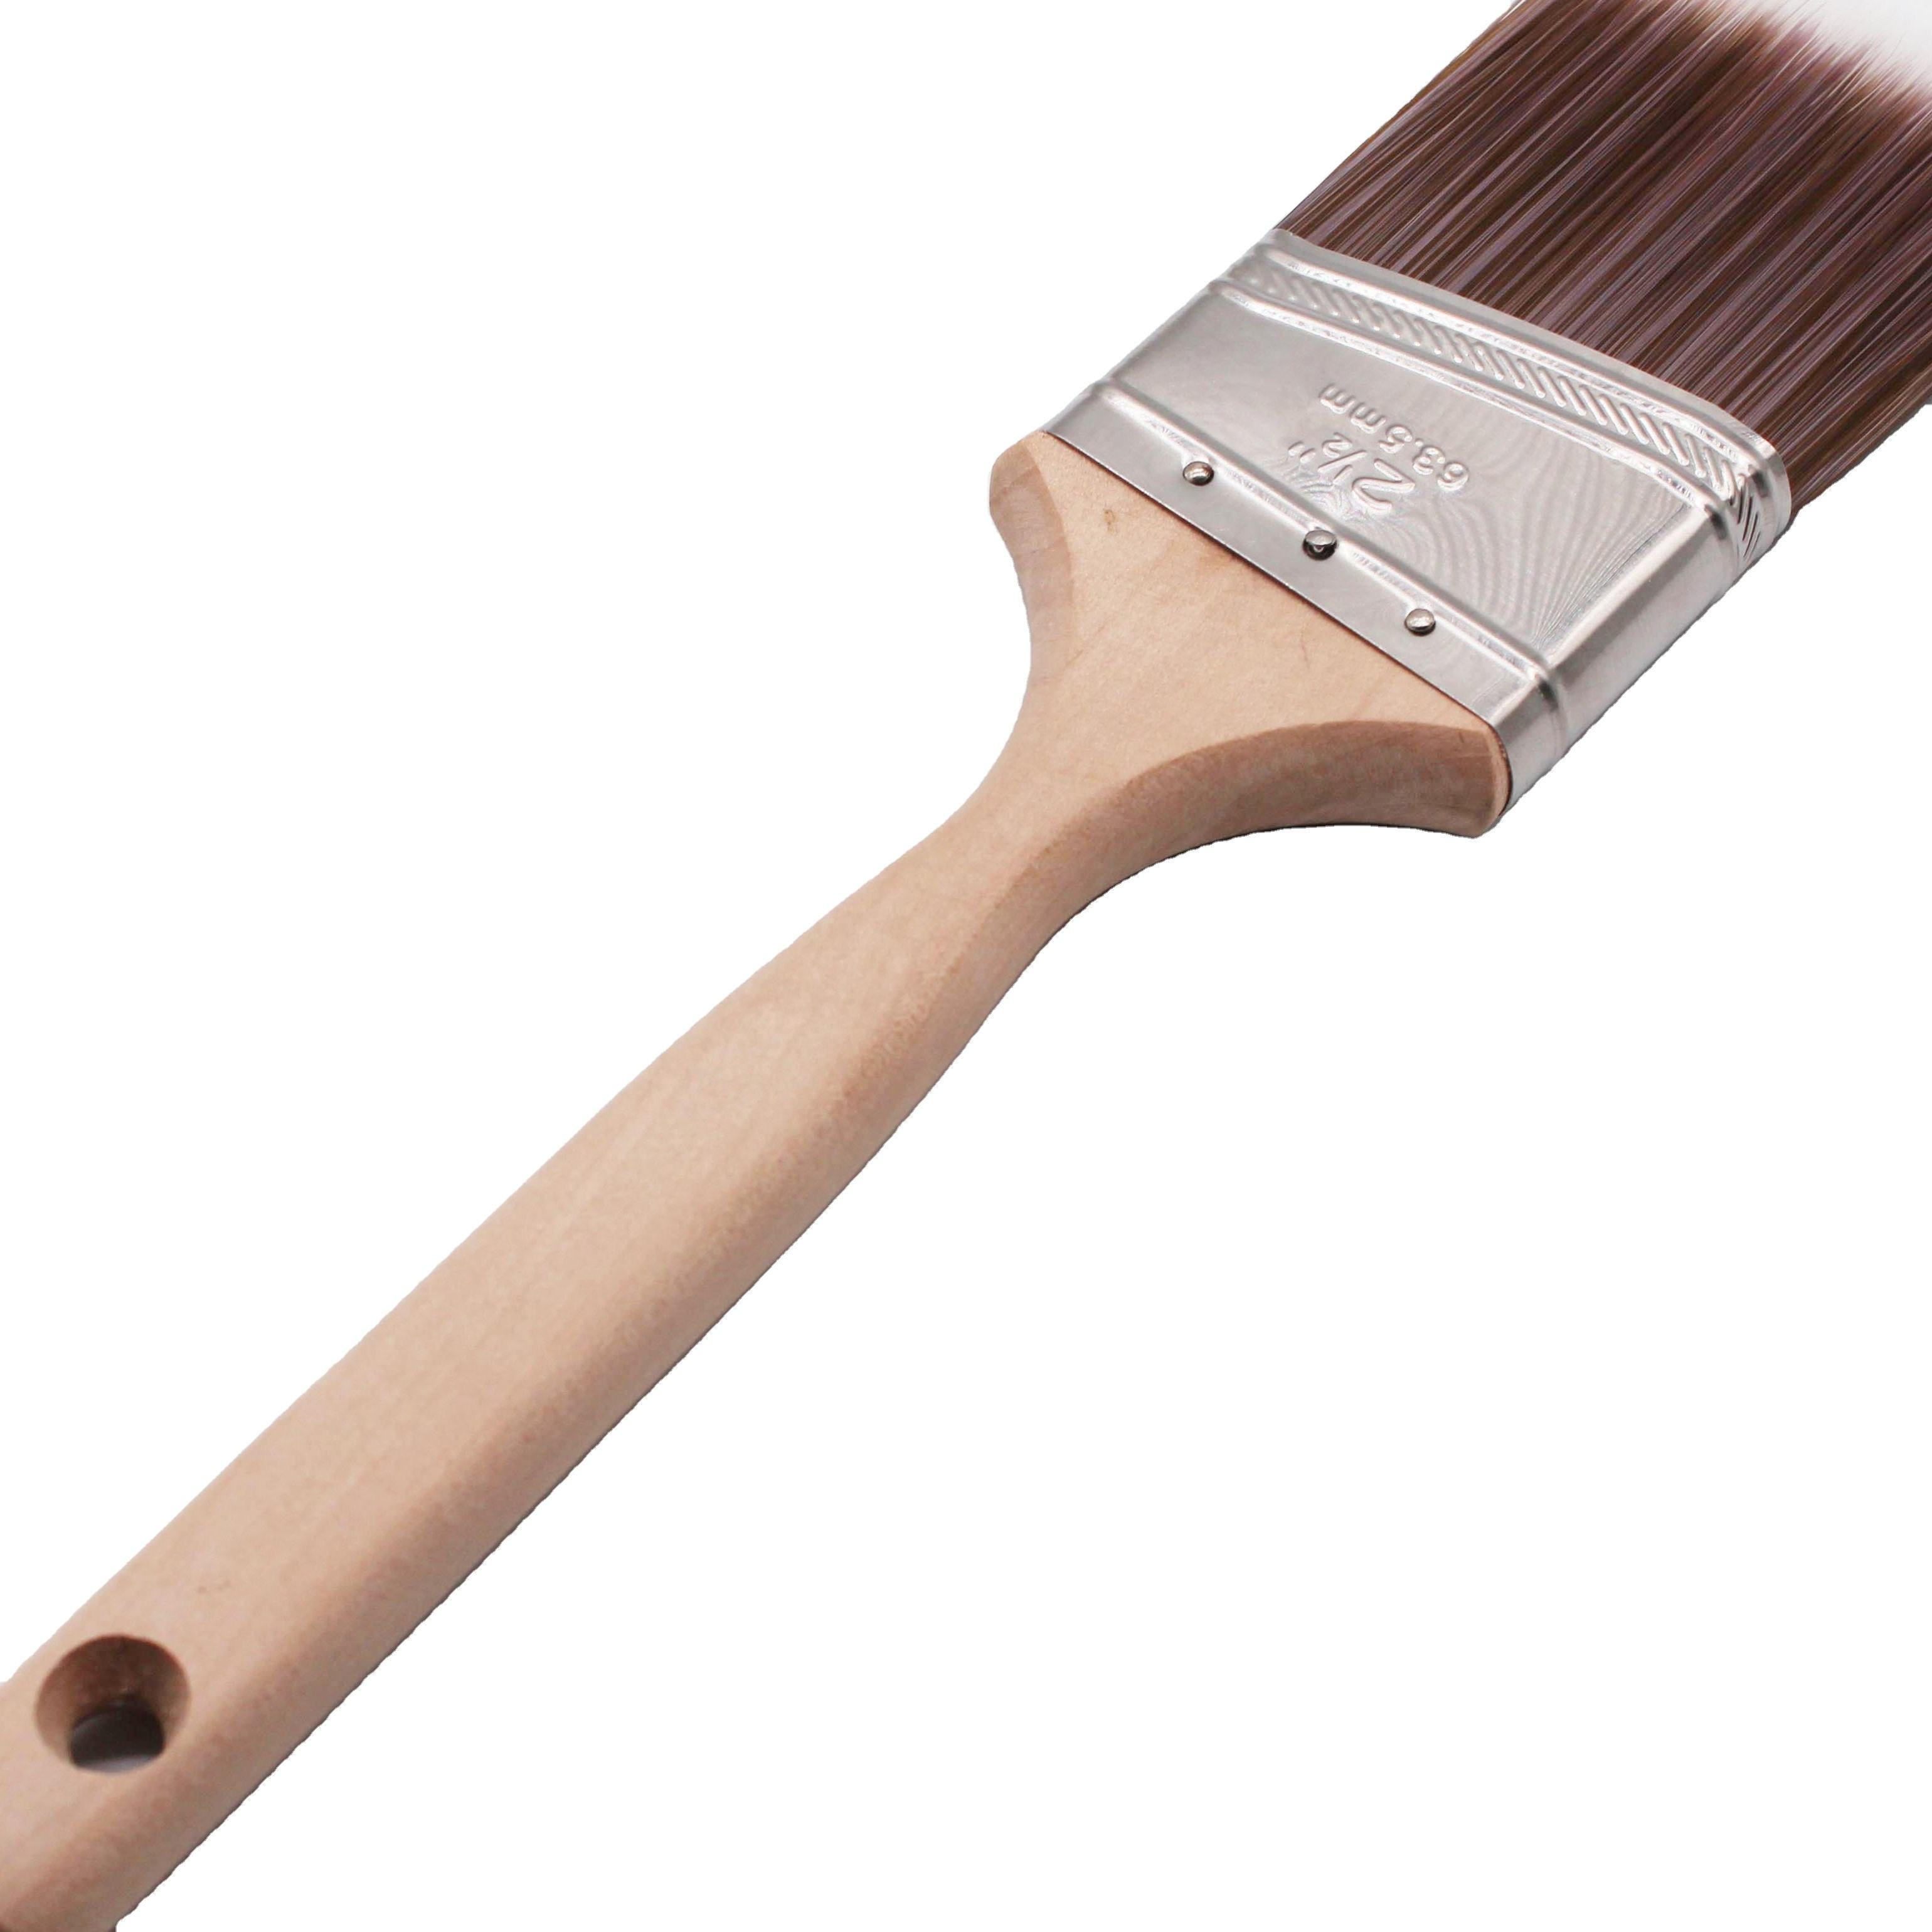 factory supply purdy paint brush with best selling performance